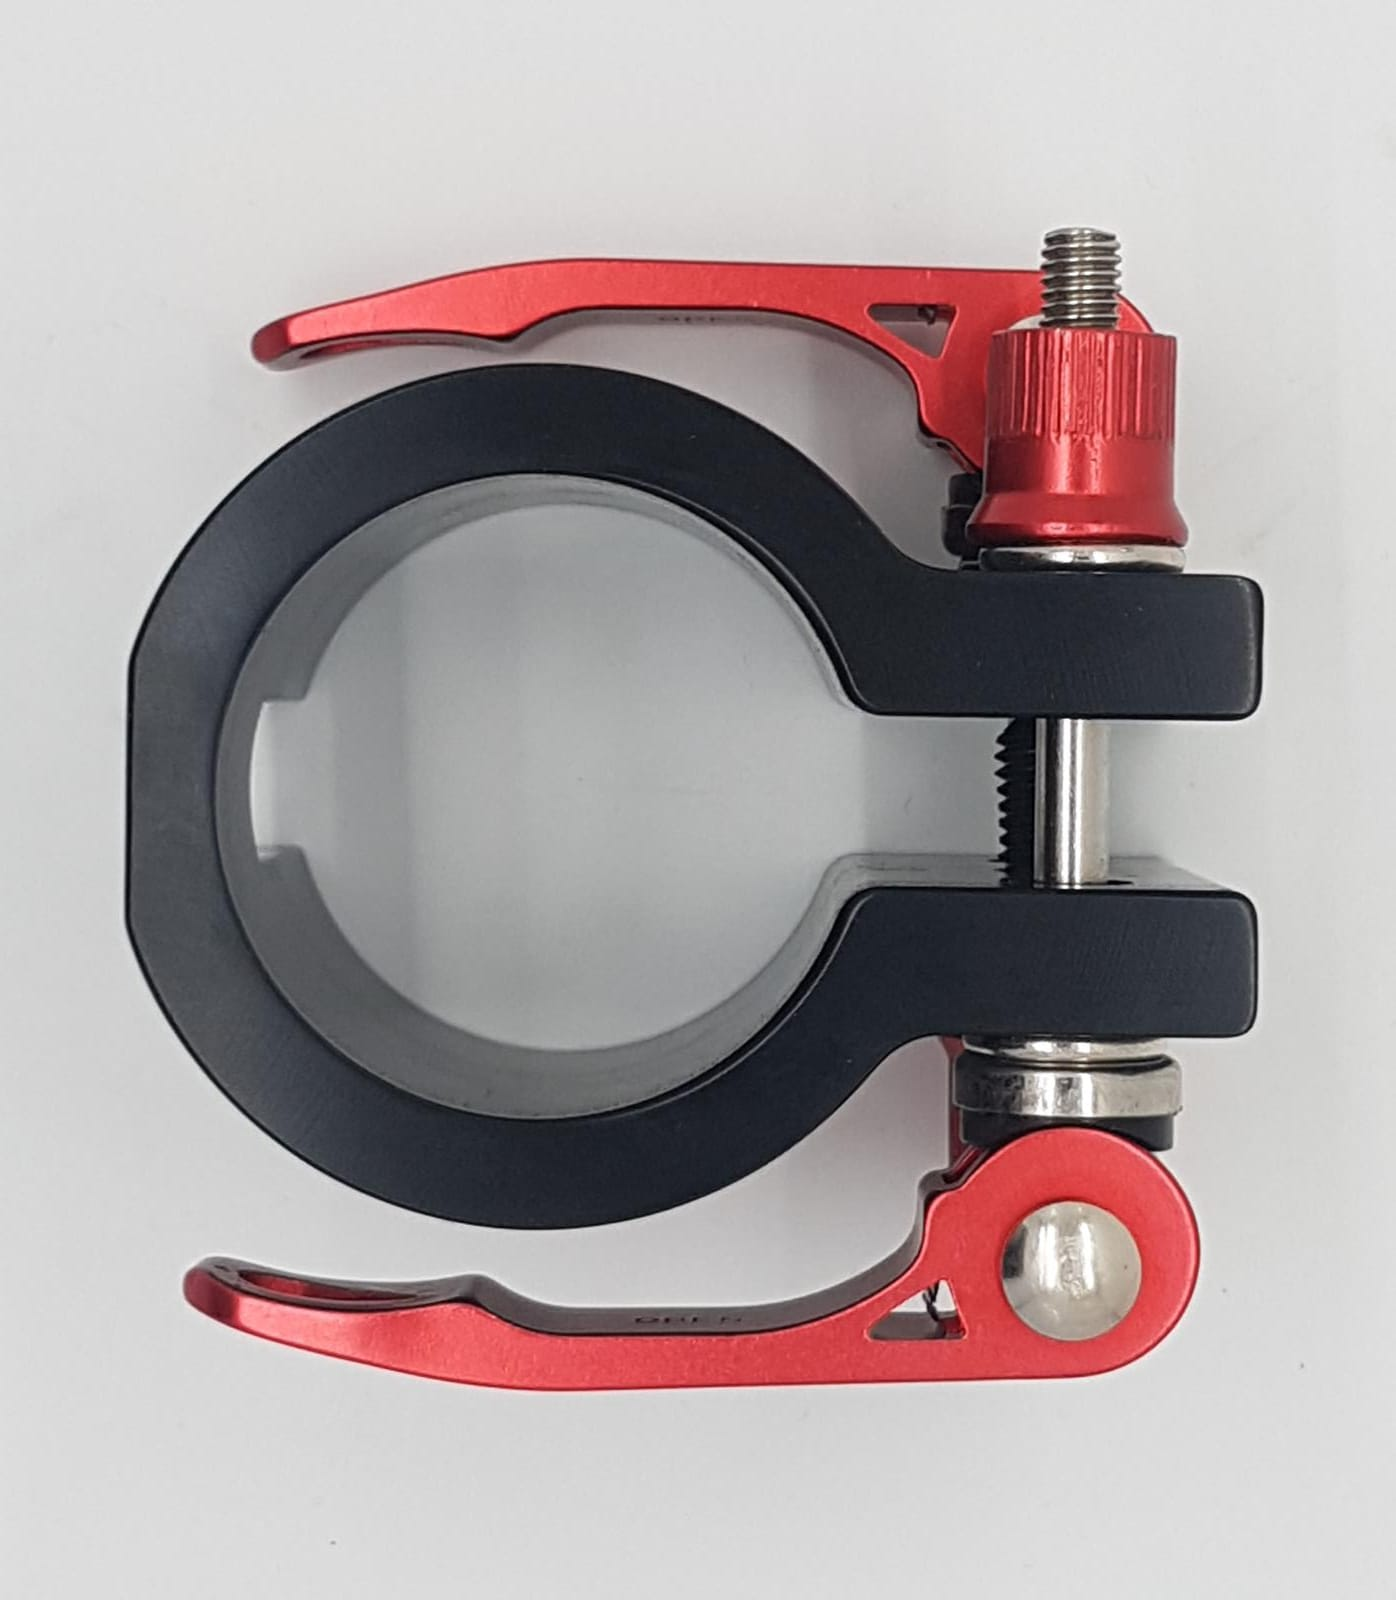 Rugged Folding Clamp (For ZERO)